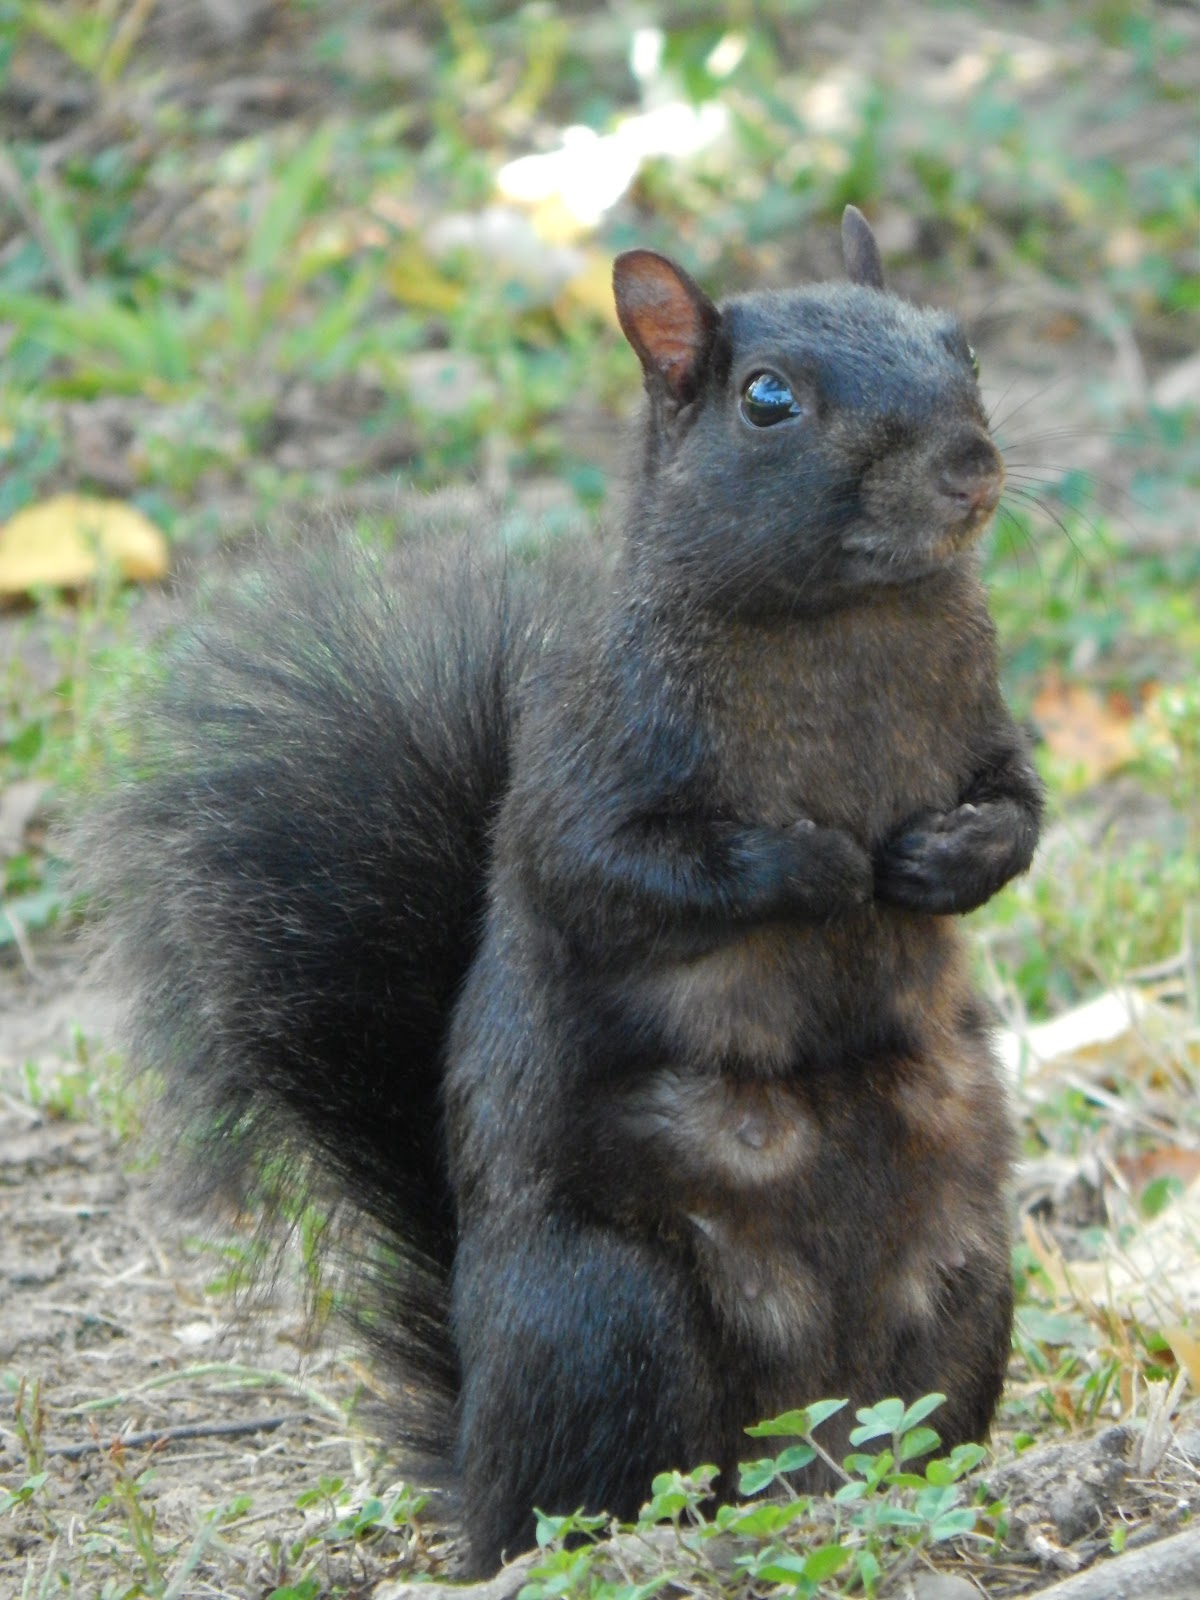 Capital Naturalist by Alonso Abugattas: Black Gray Squirrels?